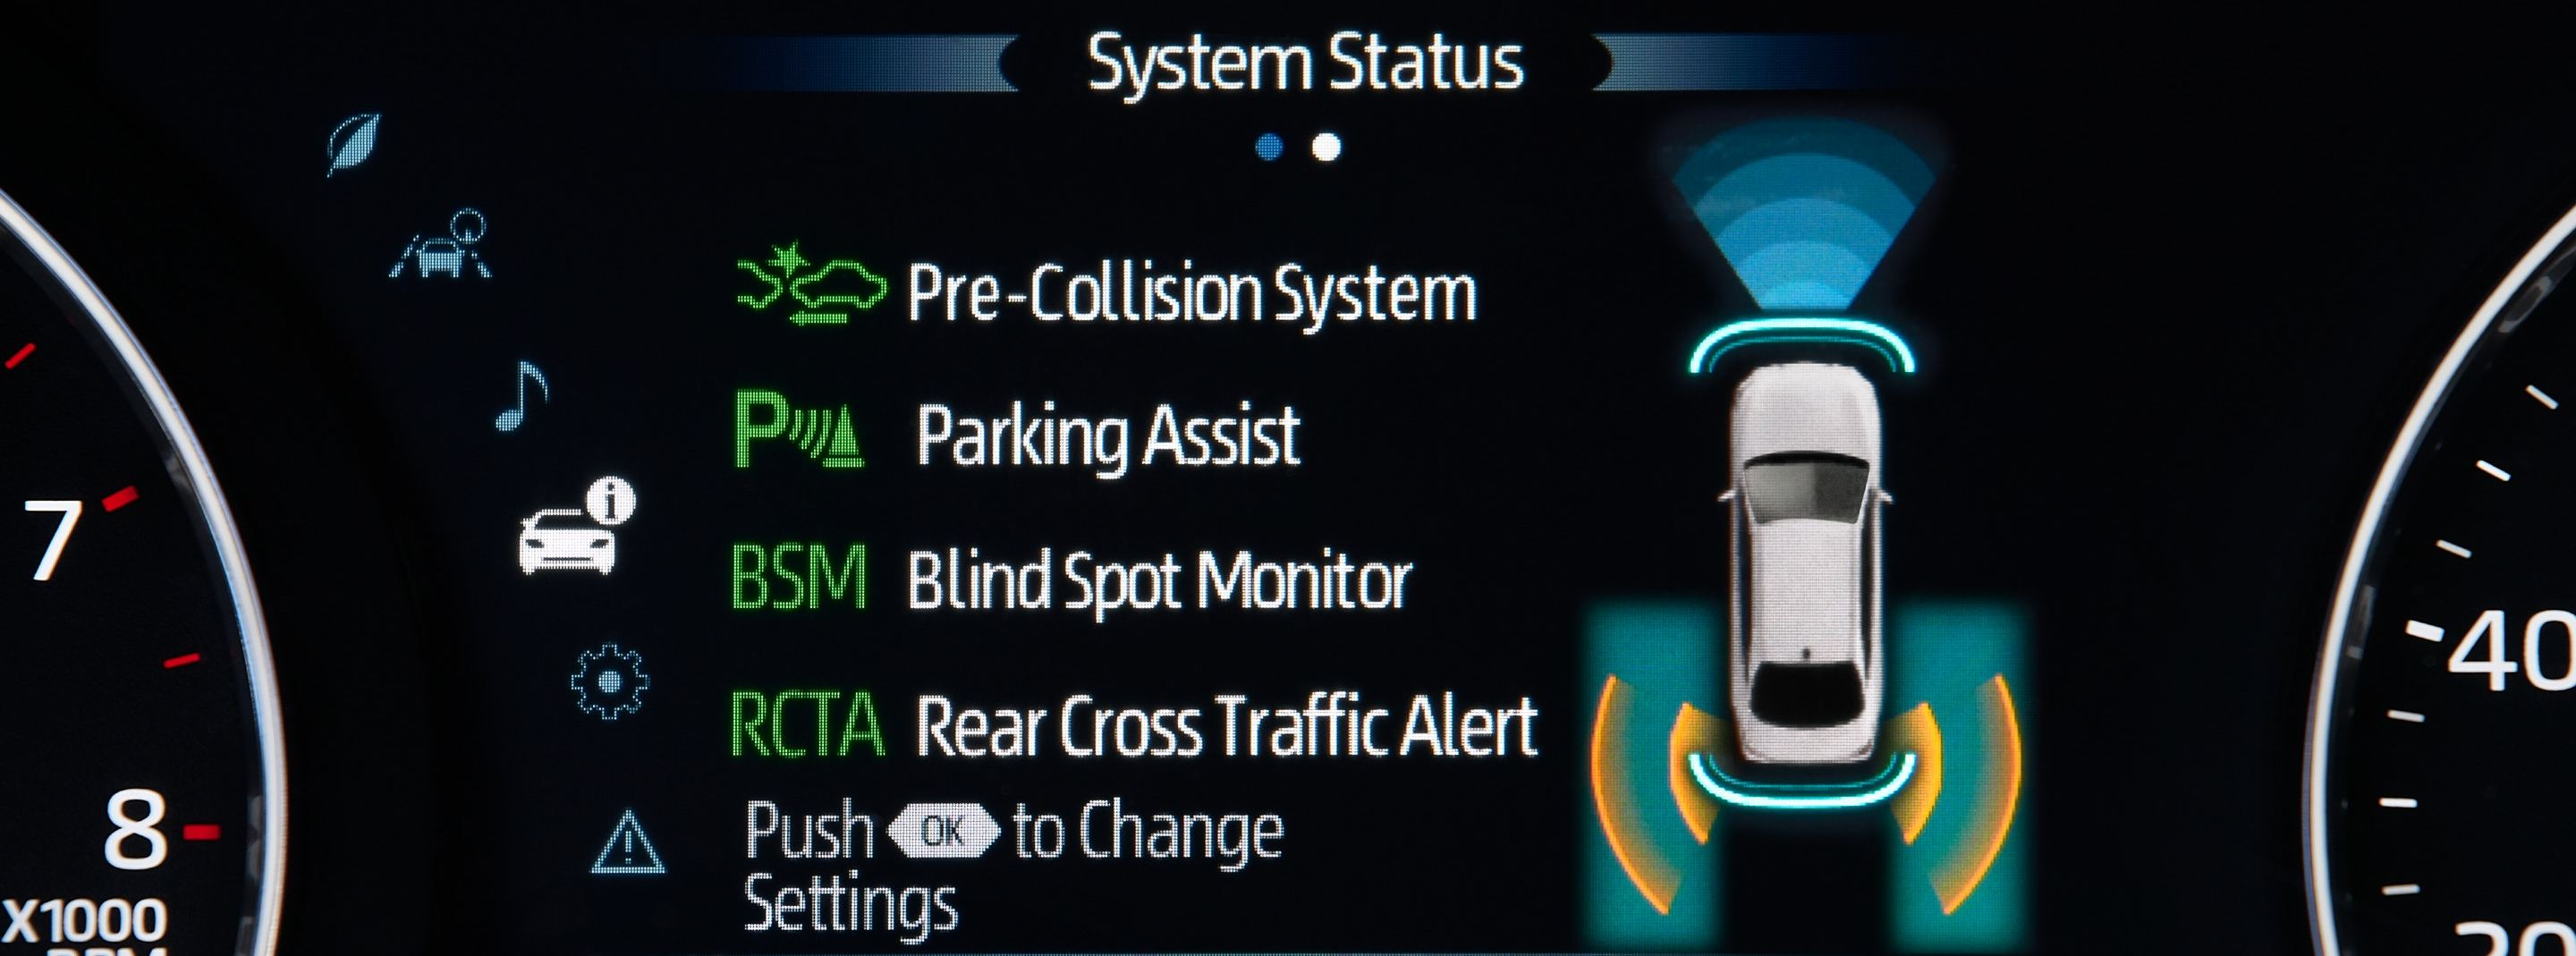 2020 Toyota Avalon Multi-Information Display